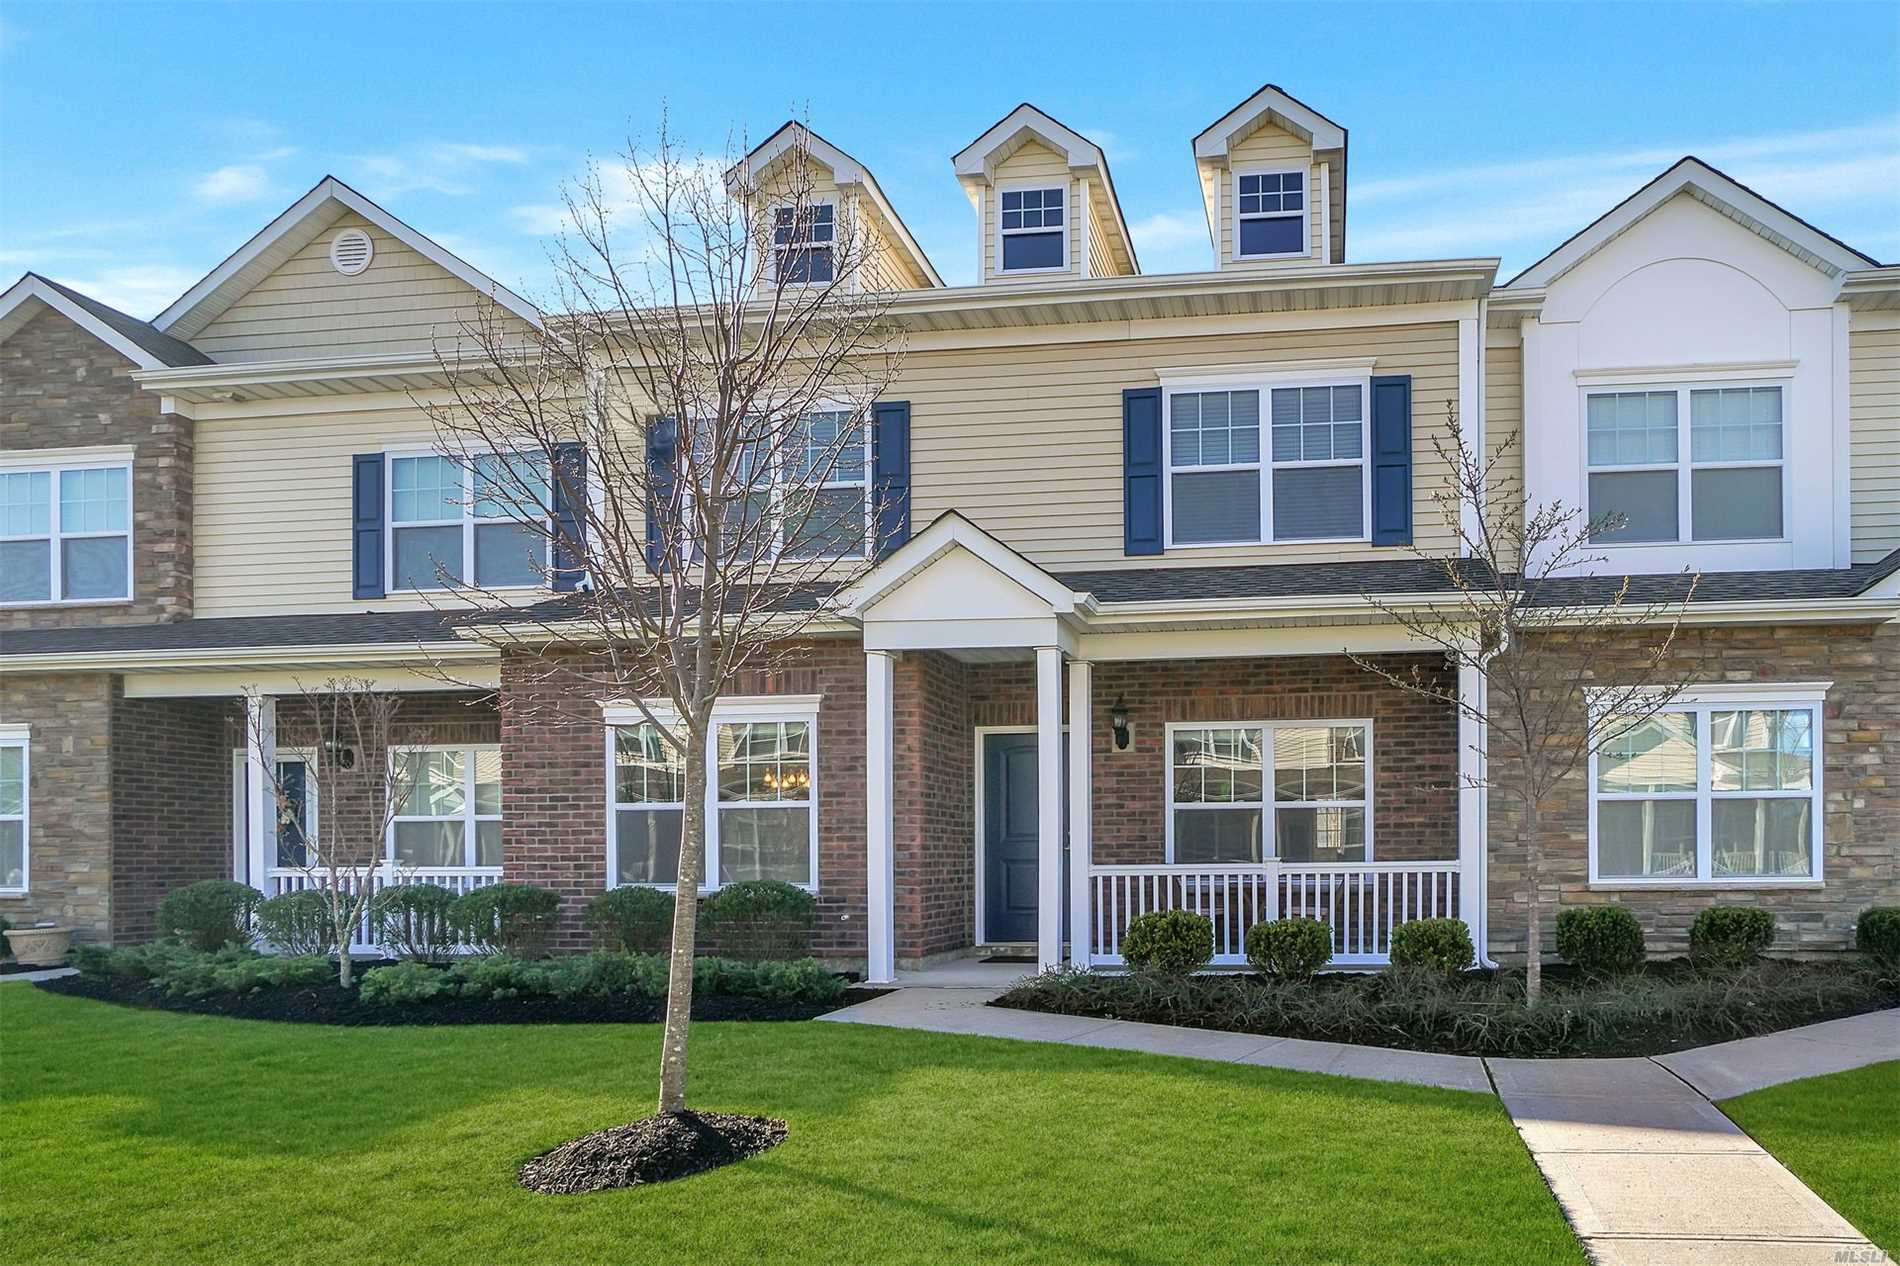 132 Rosebud Ct - Patchogue, New York